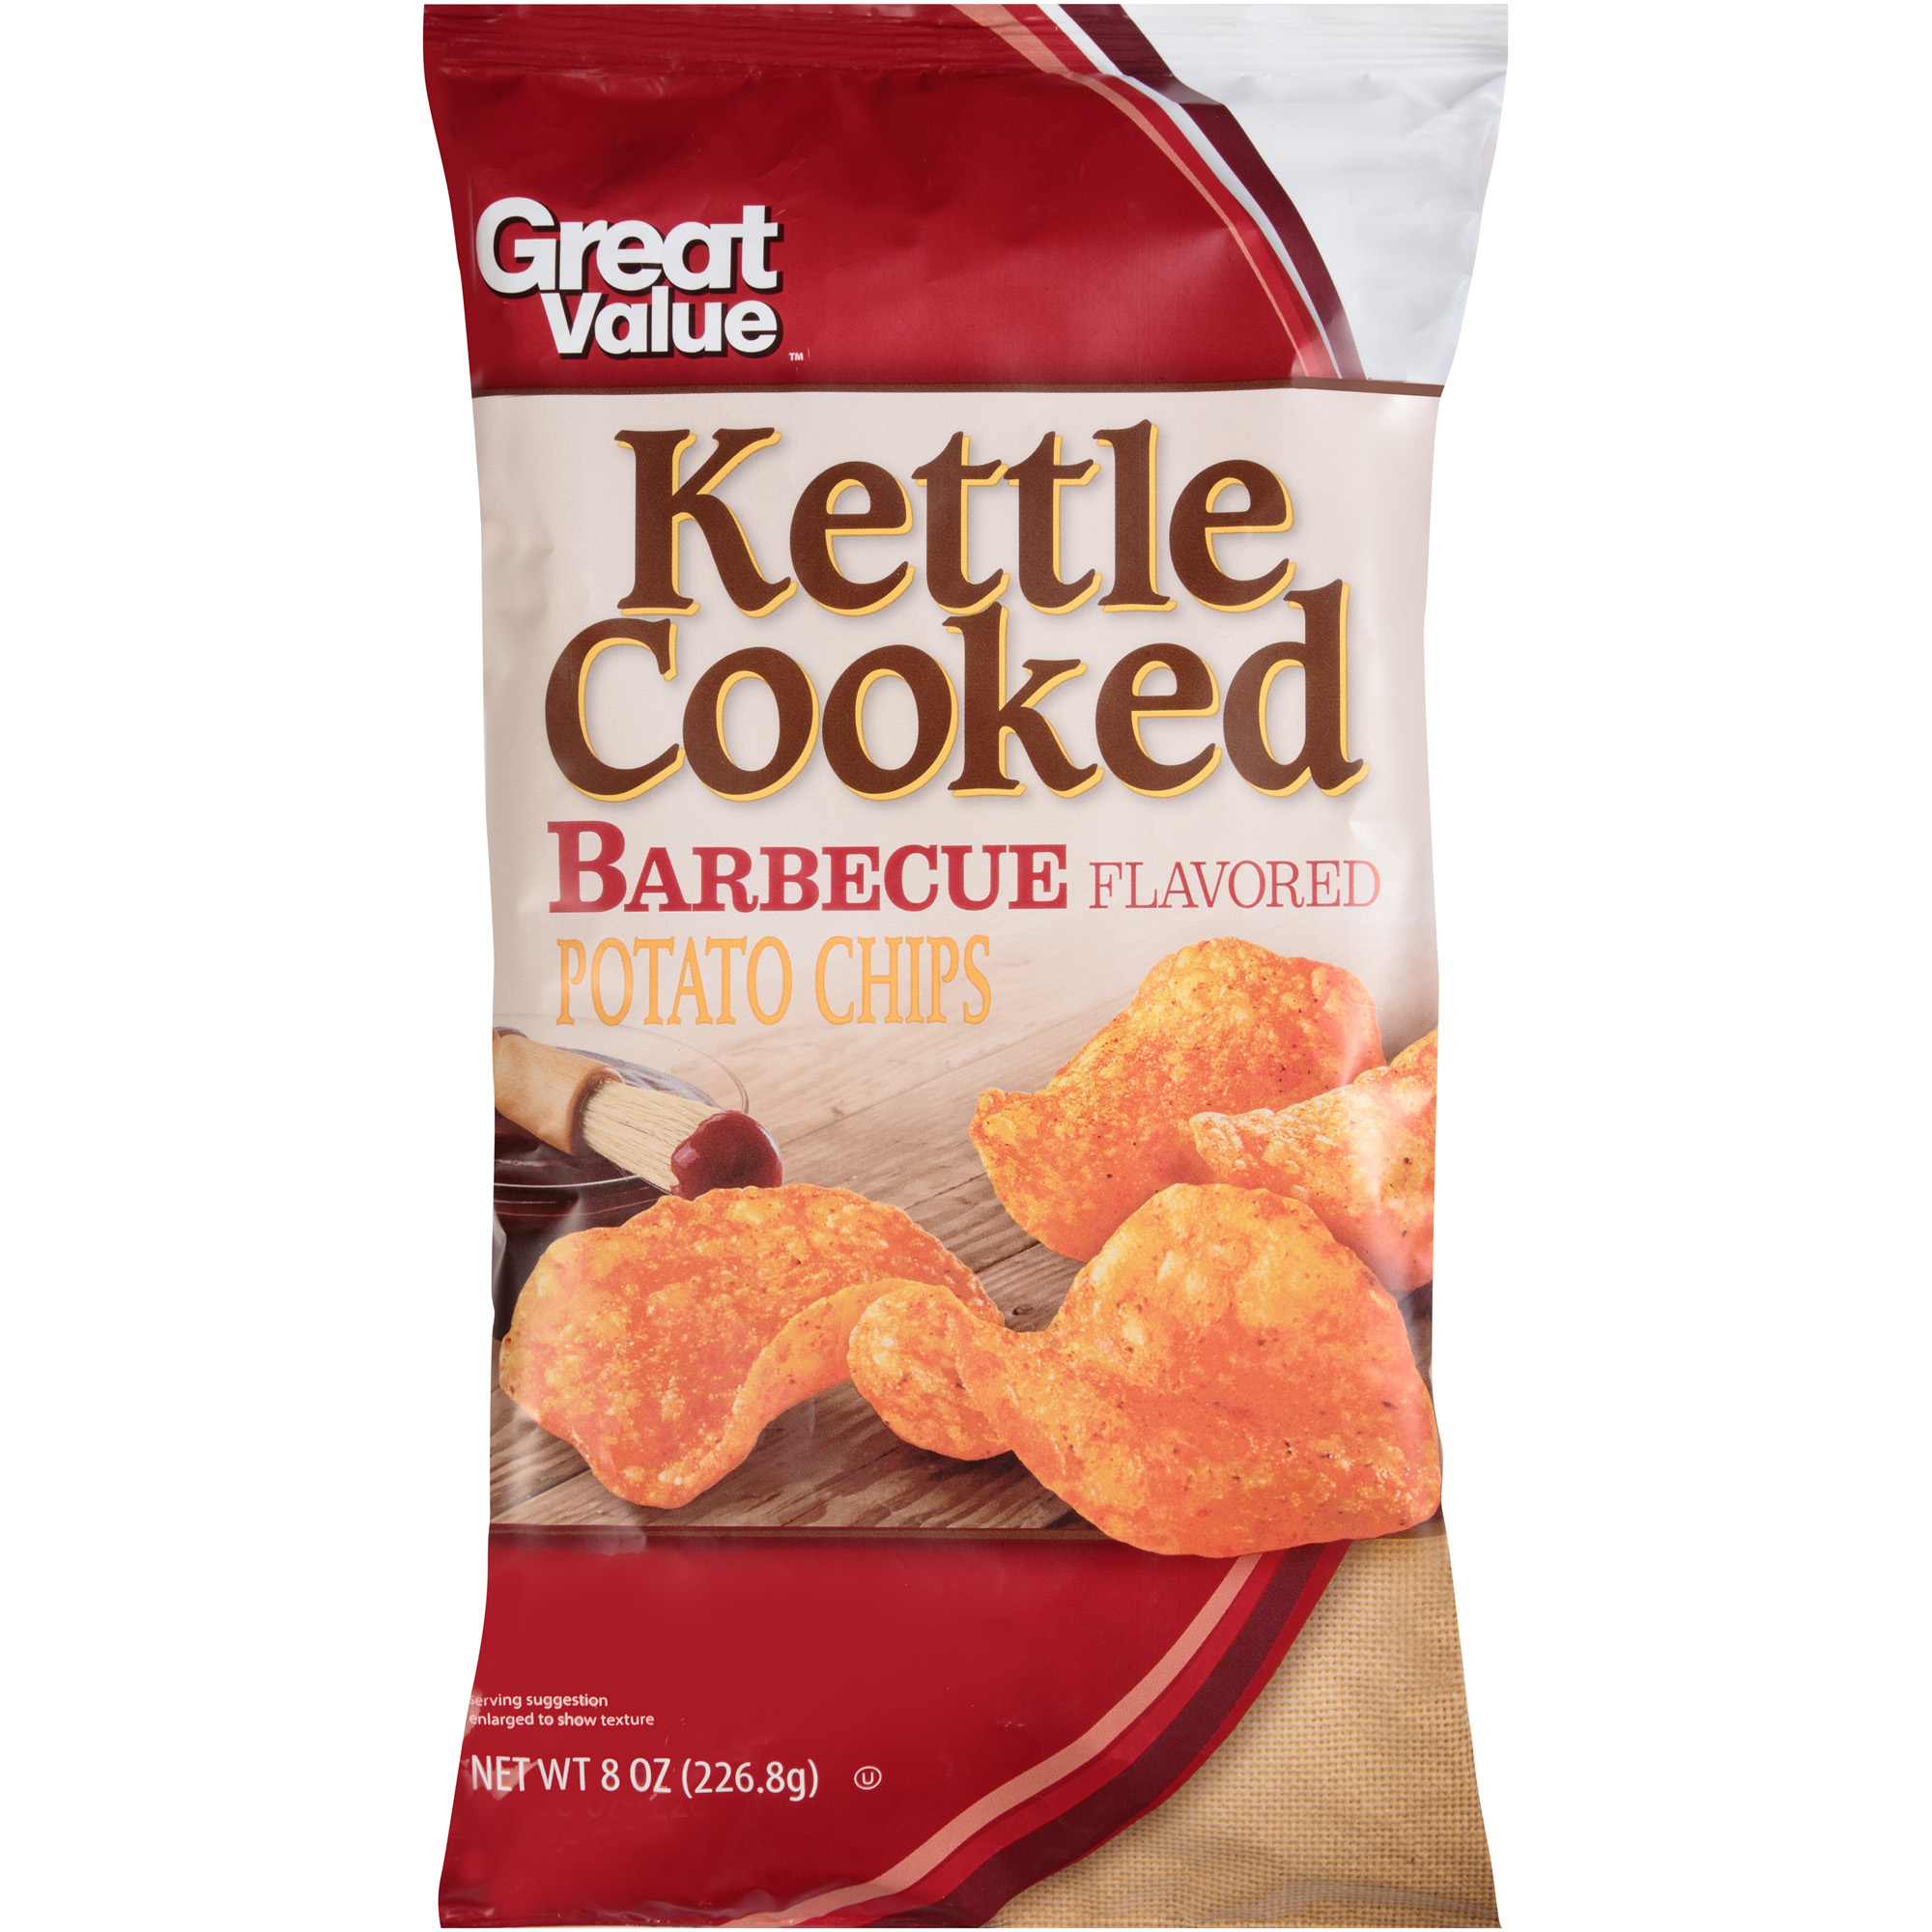 Great Value Kettle Cooked Barbecue Flavored Potato Chips, 8 oz